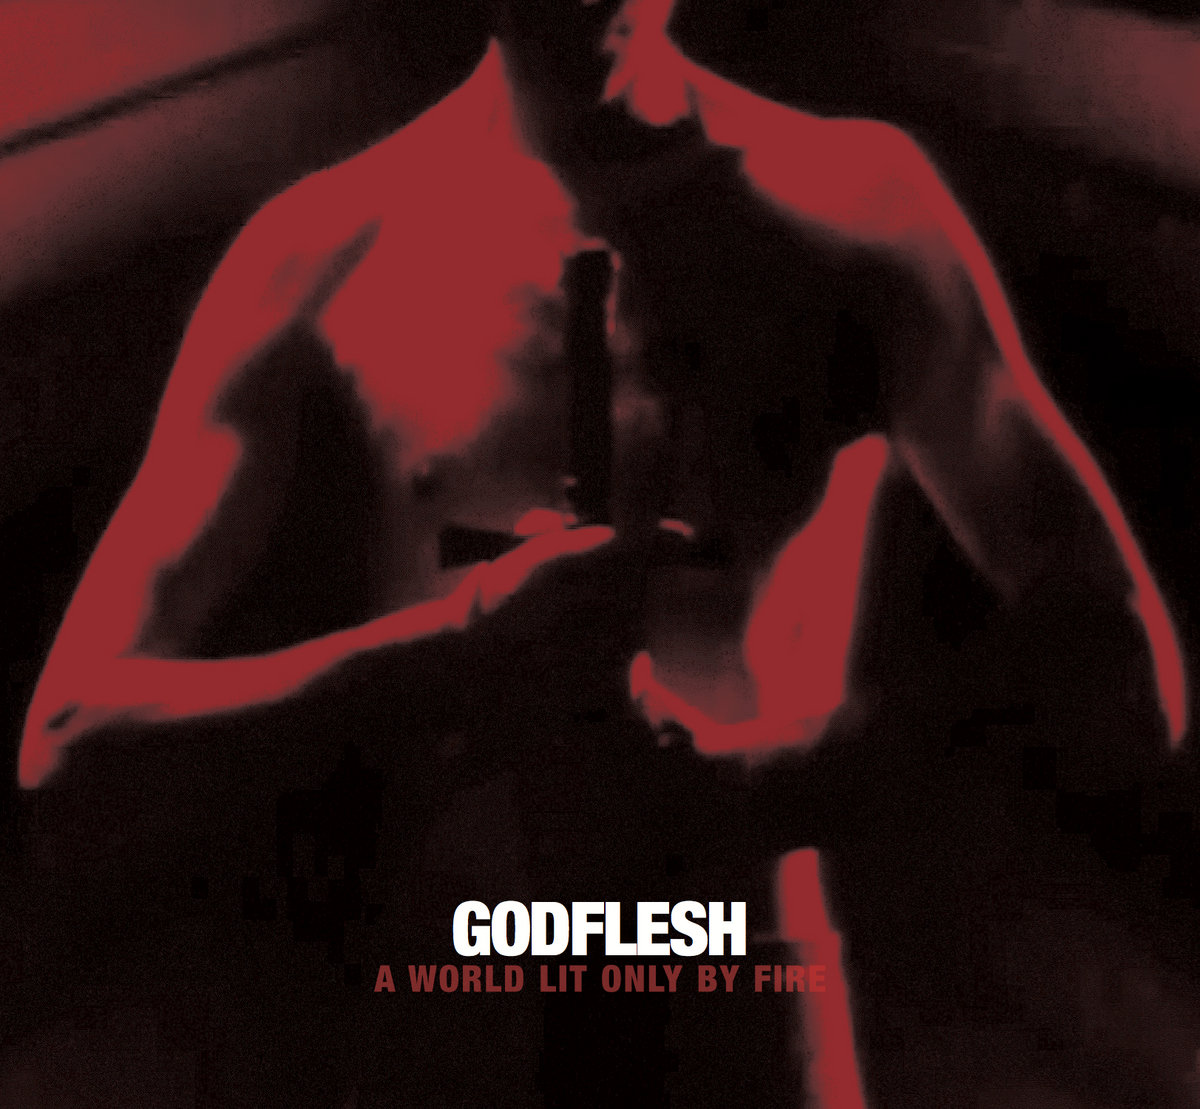 Godflesh - A World Lit Only by Fire (2014)